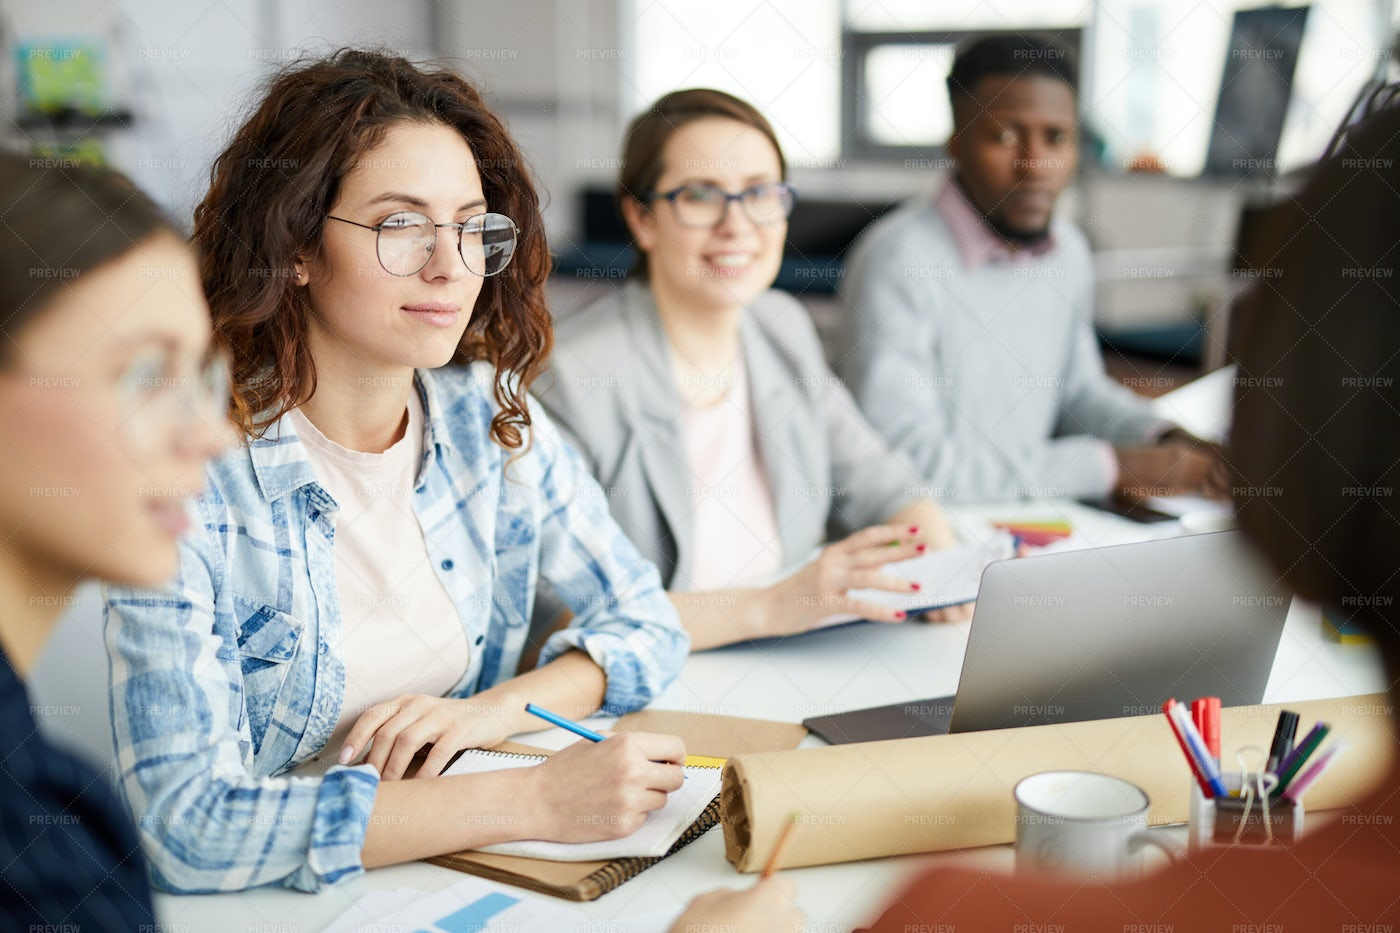 Contemporary Woman At Meeting Table: Stock Photos